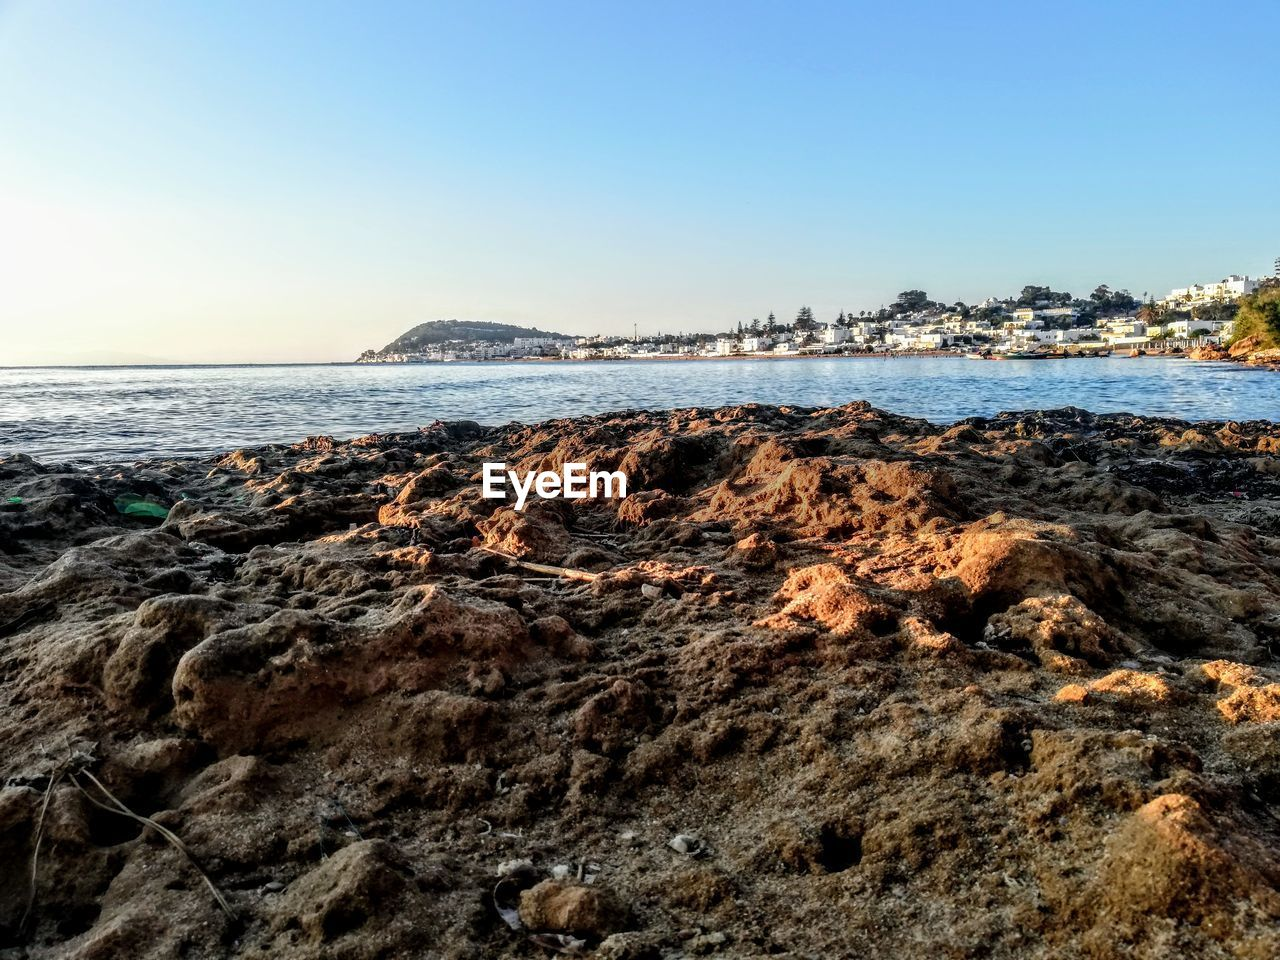 sea, sky, water, beach, rock, scenics - nature, land, rock - object, beauty in nature, clear sky, solid, nature, copy space, no people, tranquility, tranquil scene, horizon over water, horizon, rock formation, outdoors, rocky coastline